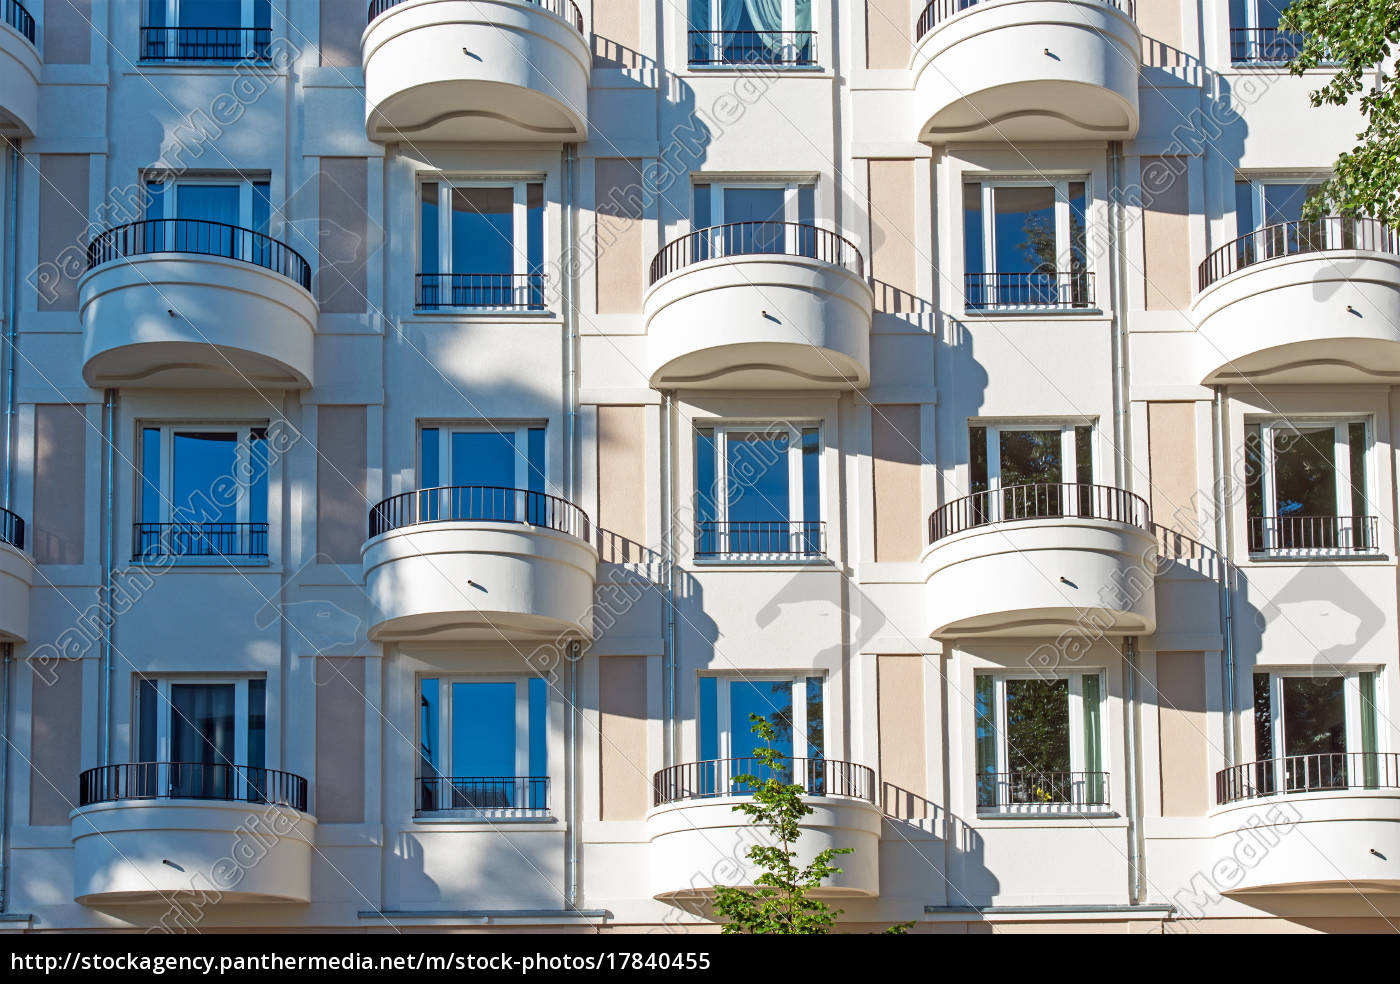 Stock Photo 17840455 - facade of a modern apartment building in berlin with  round